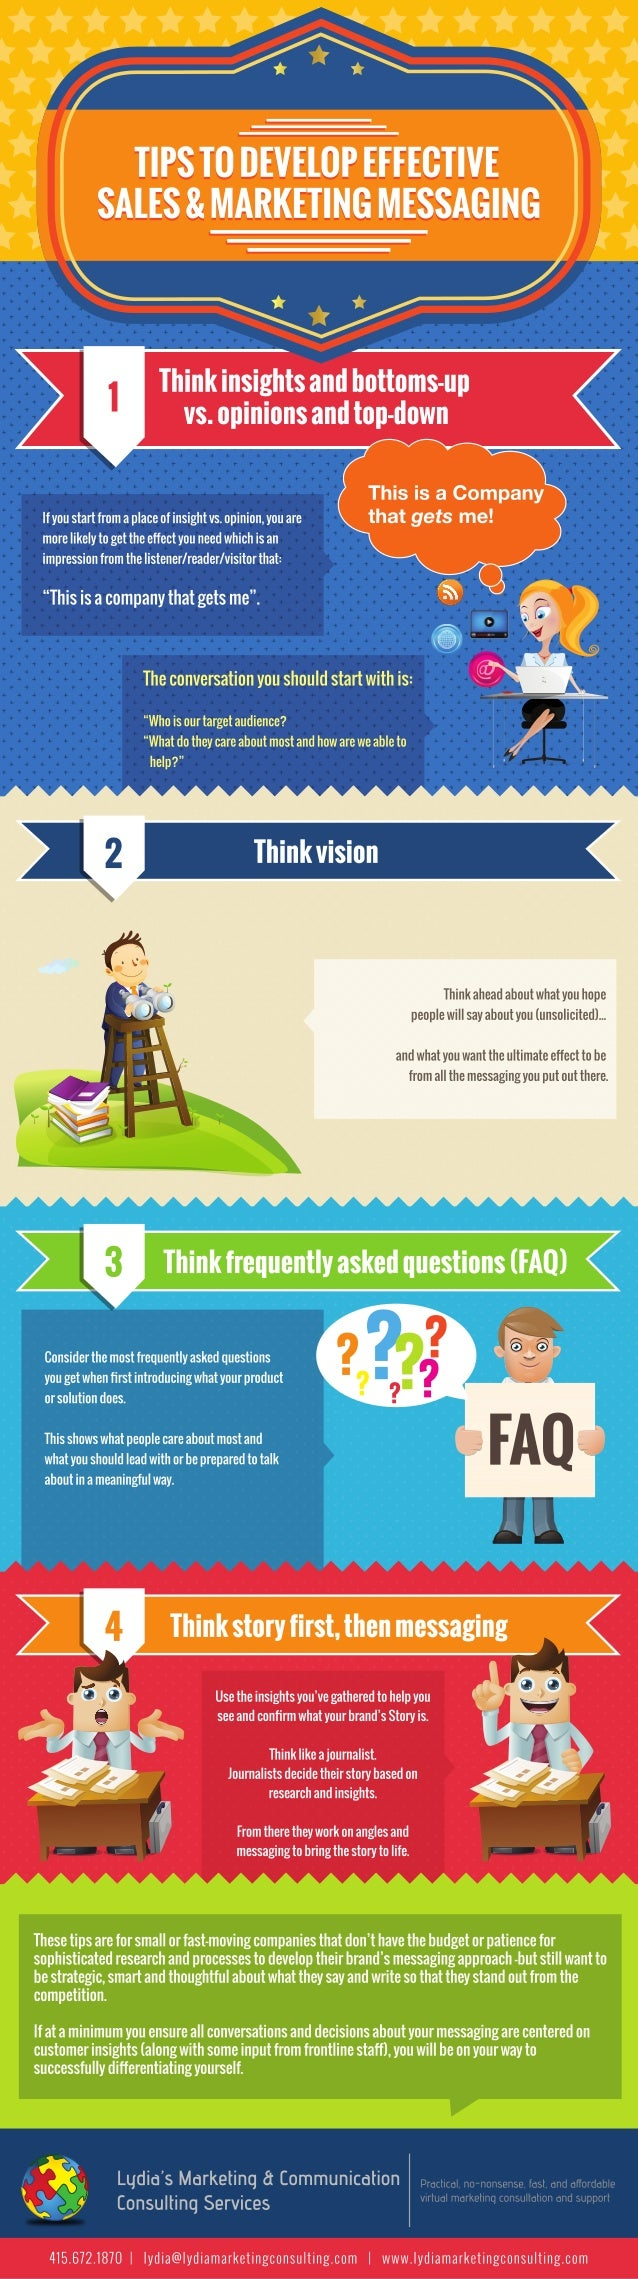 INFOGRAPHIC: 4 Easy Tips to Develop Effective Sales/Marketing Positioning and Messaging